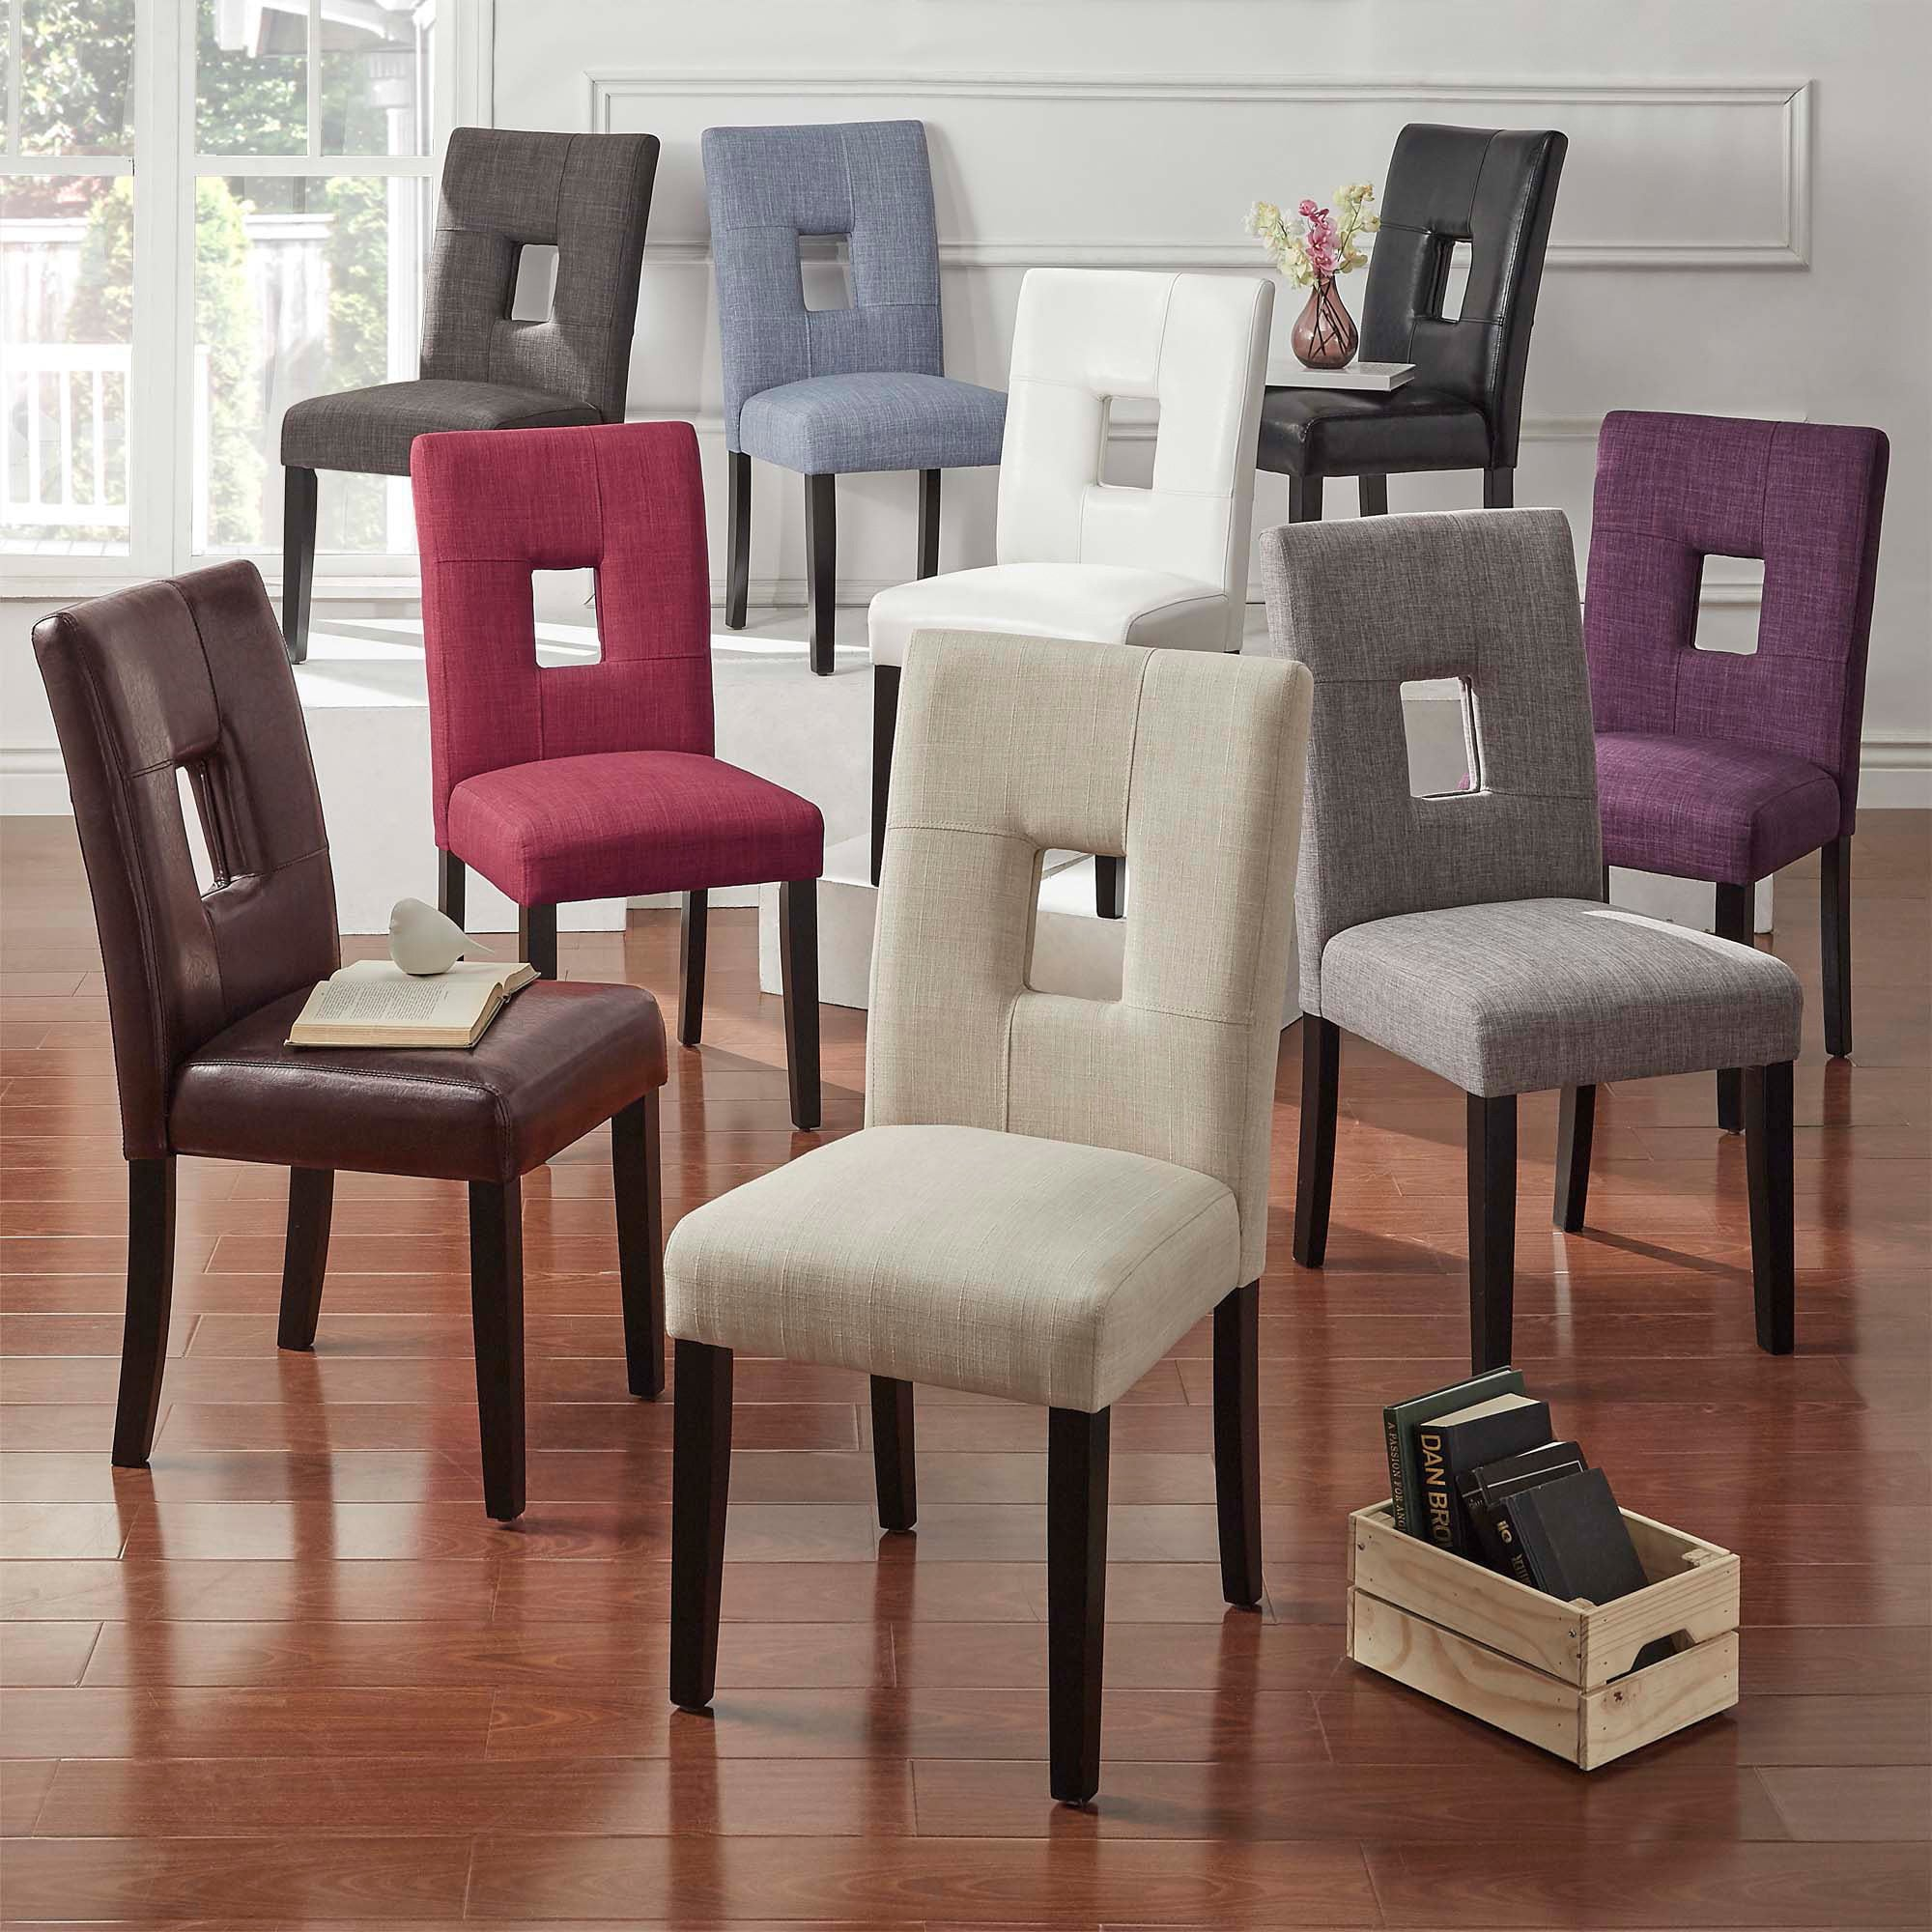 Mendoza Keyhole Back Dining Chairs Set Of 2 By Inspire Q Bold On Sale Overstock 5178479